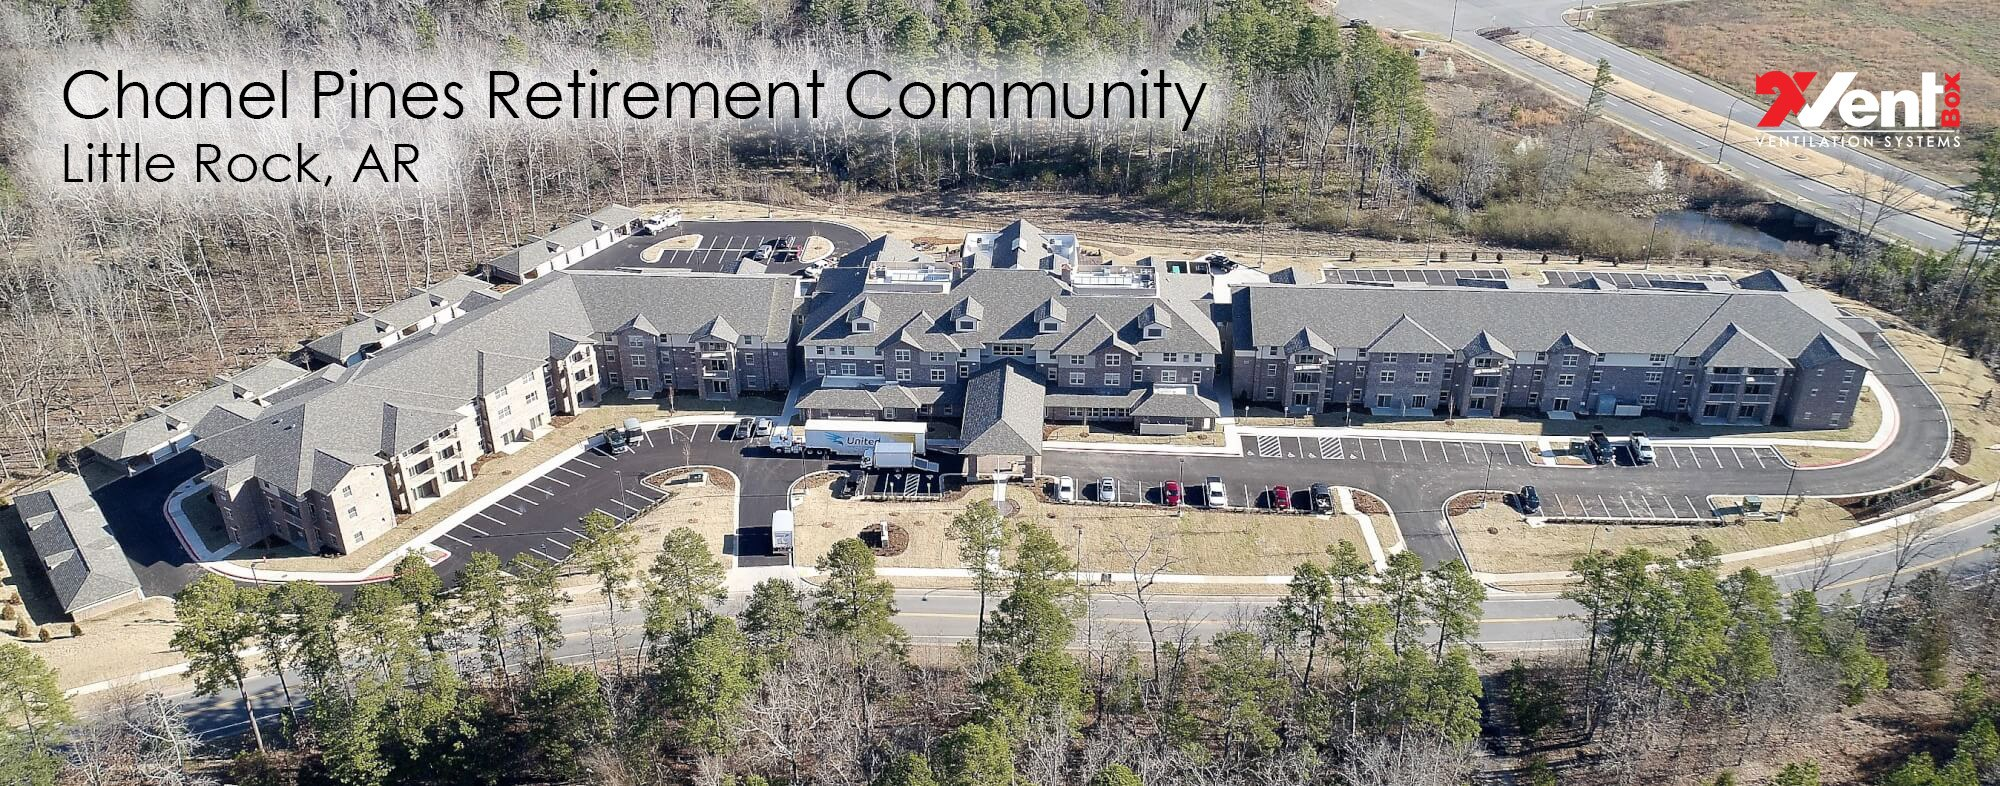 Chenal Pines Retirement Community